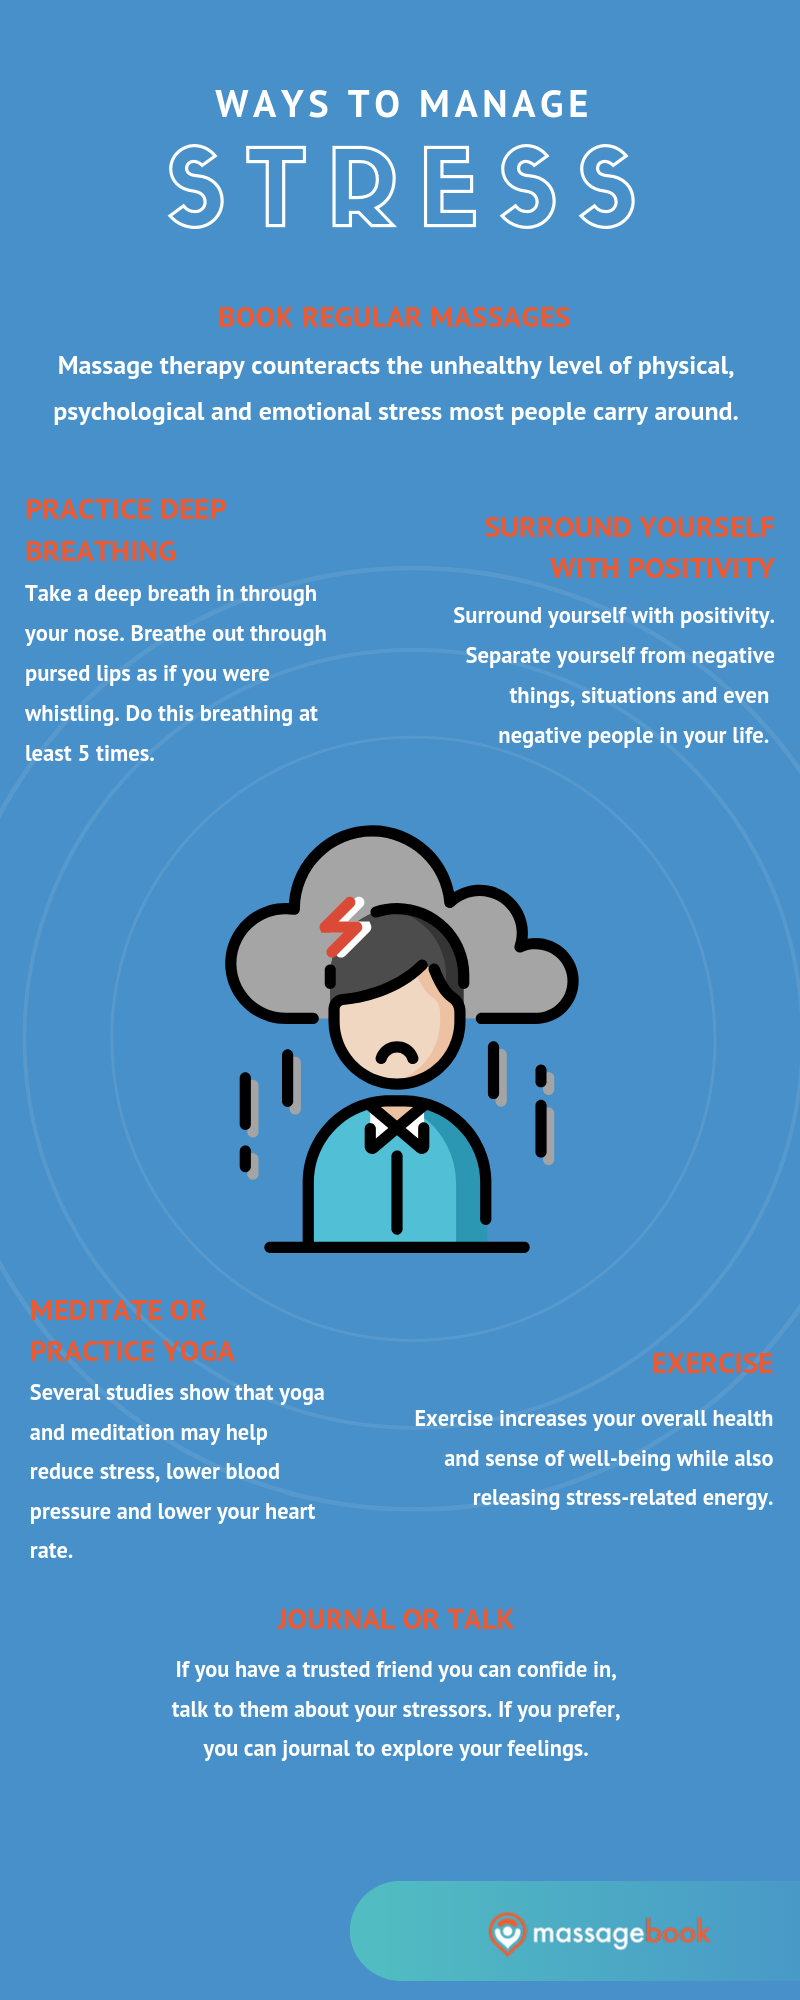 ways_to_manage_stress_shareable_infographic.png